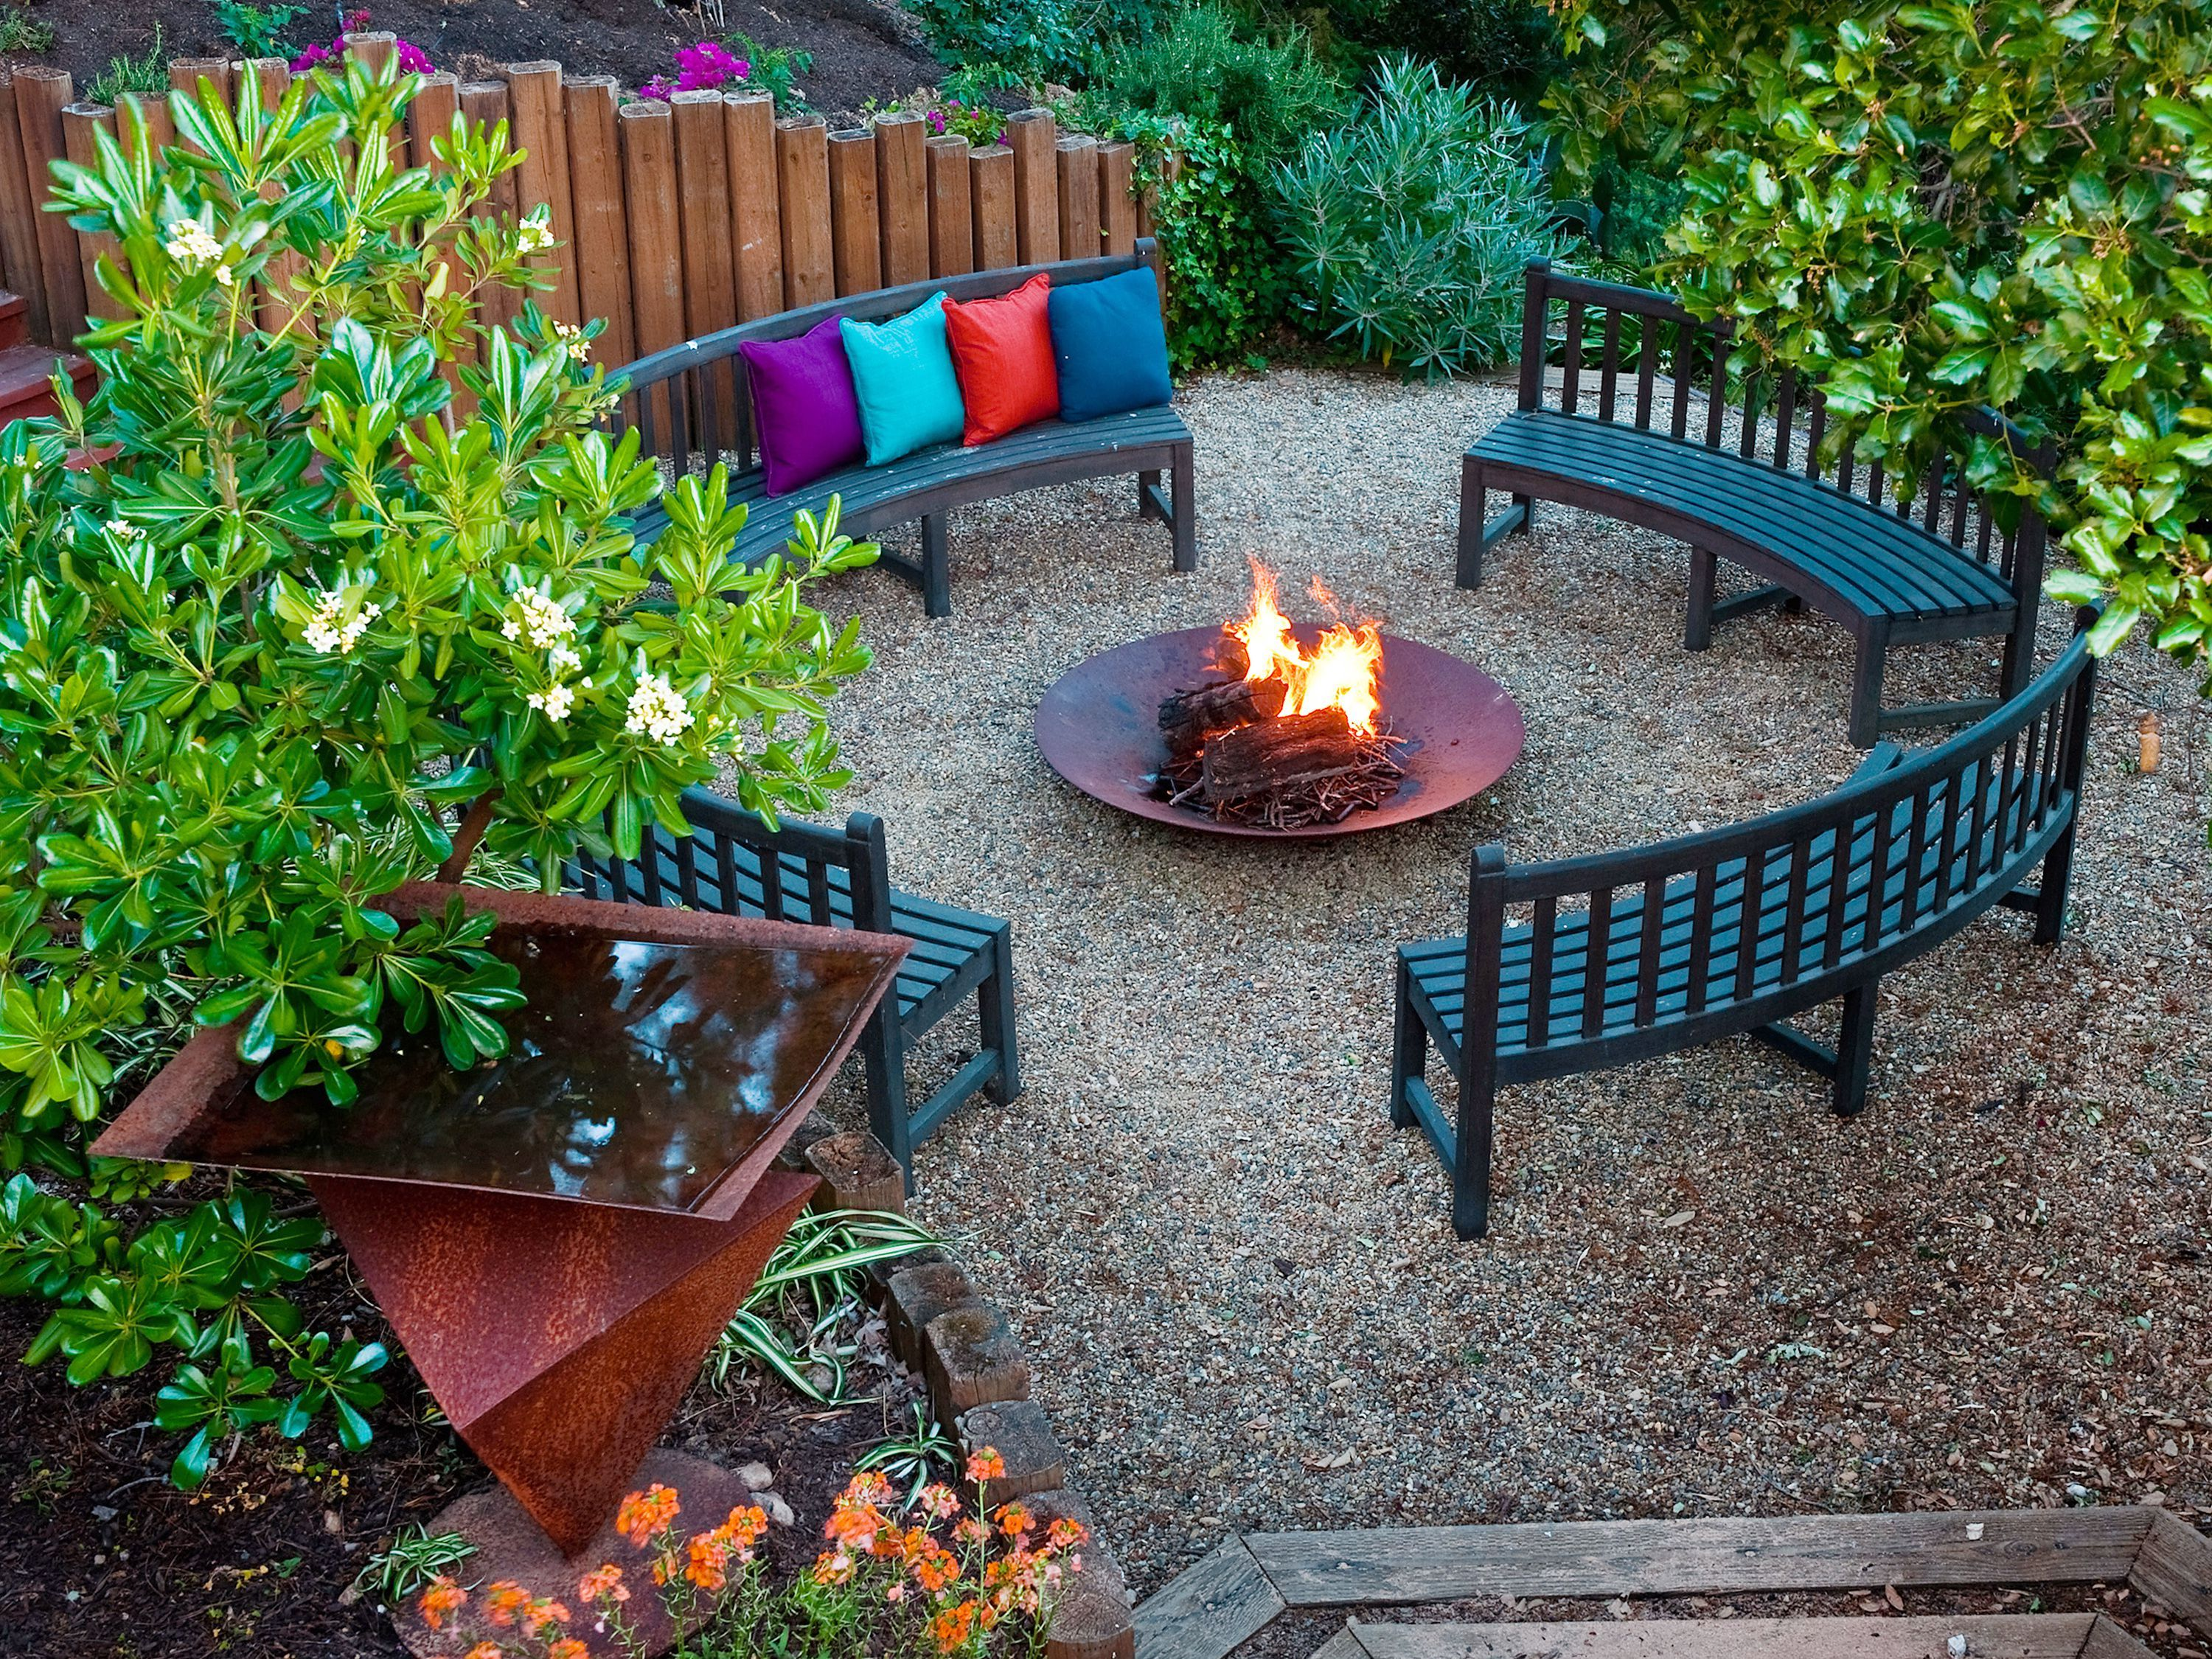 Garden And Patio, Simple And Easy Backyard Landscaping Ideas No Grass For  Small House Design With Fire Pit In The Middle Round Wooden Bench Seat  Painted ...